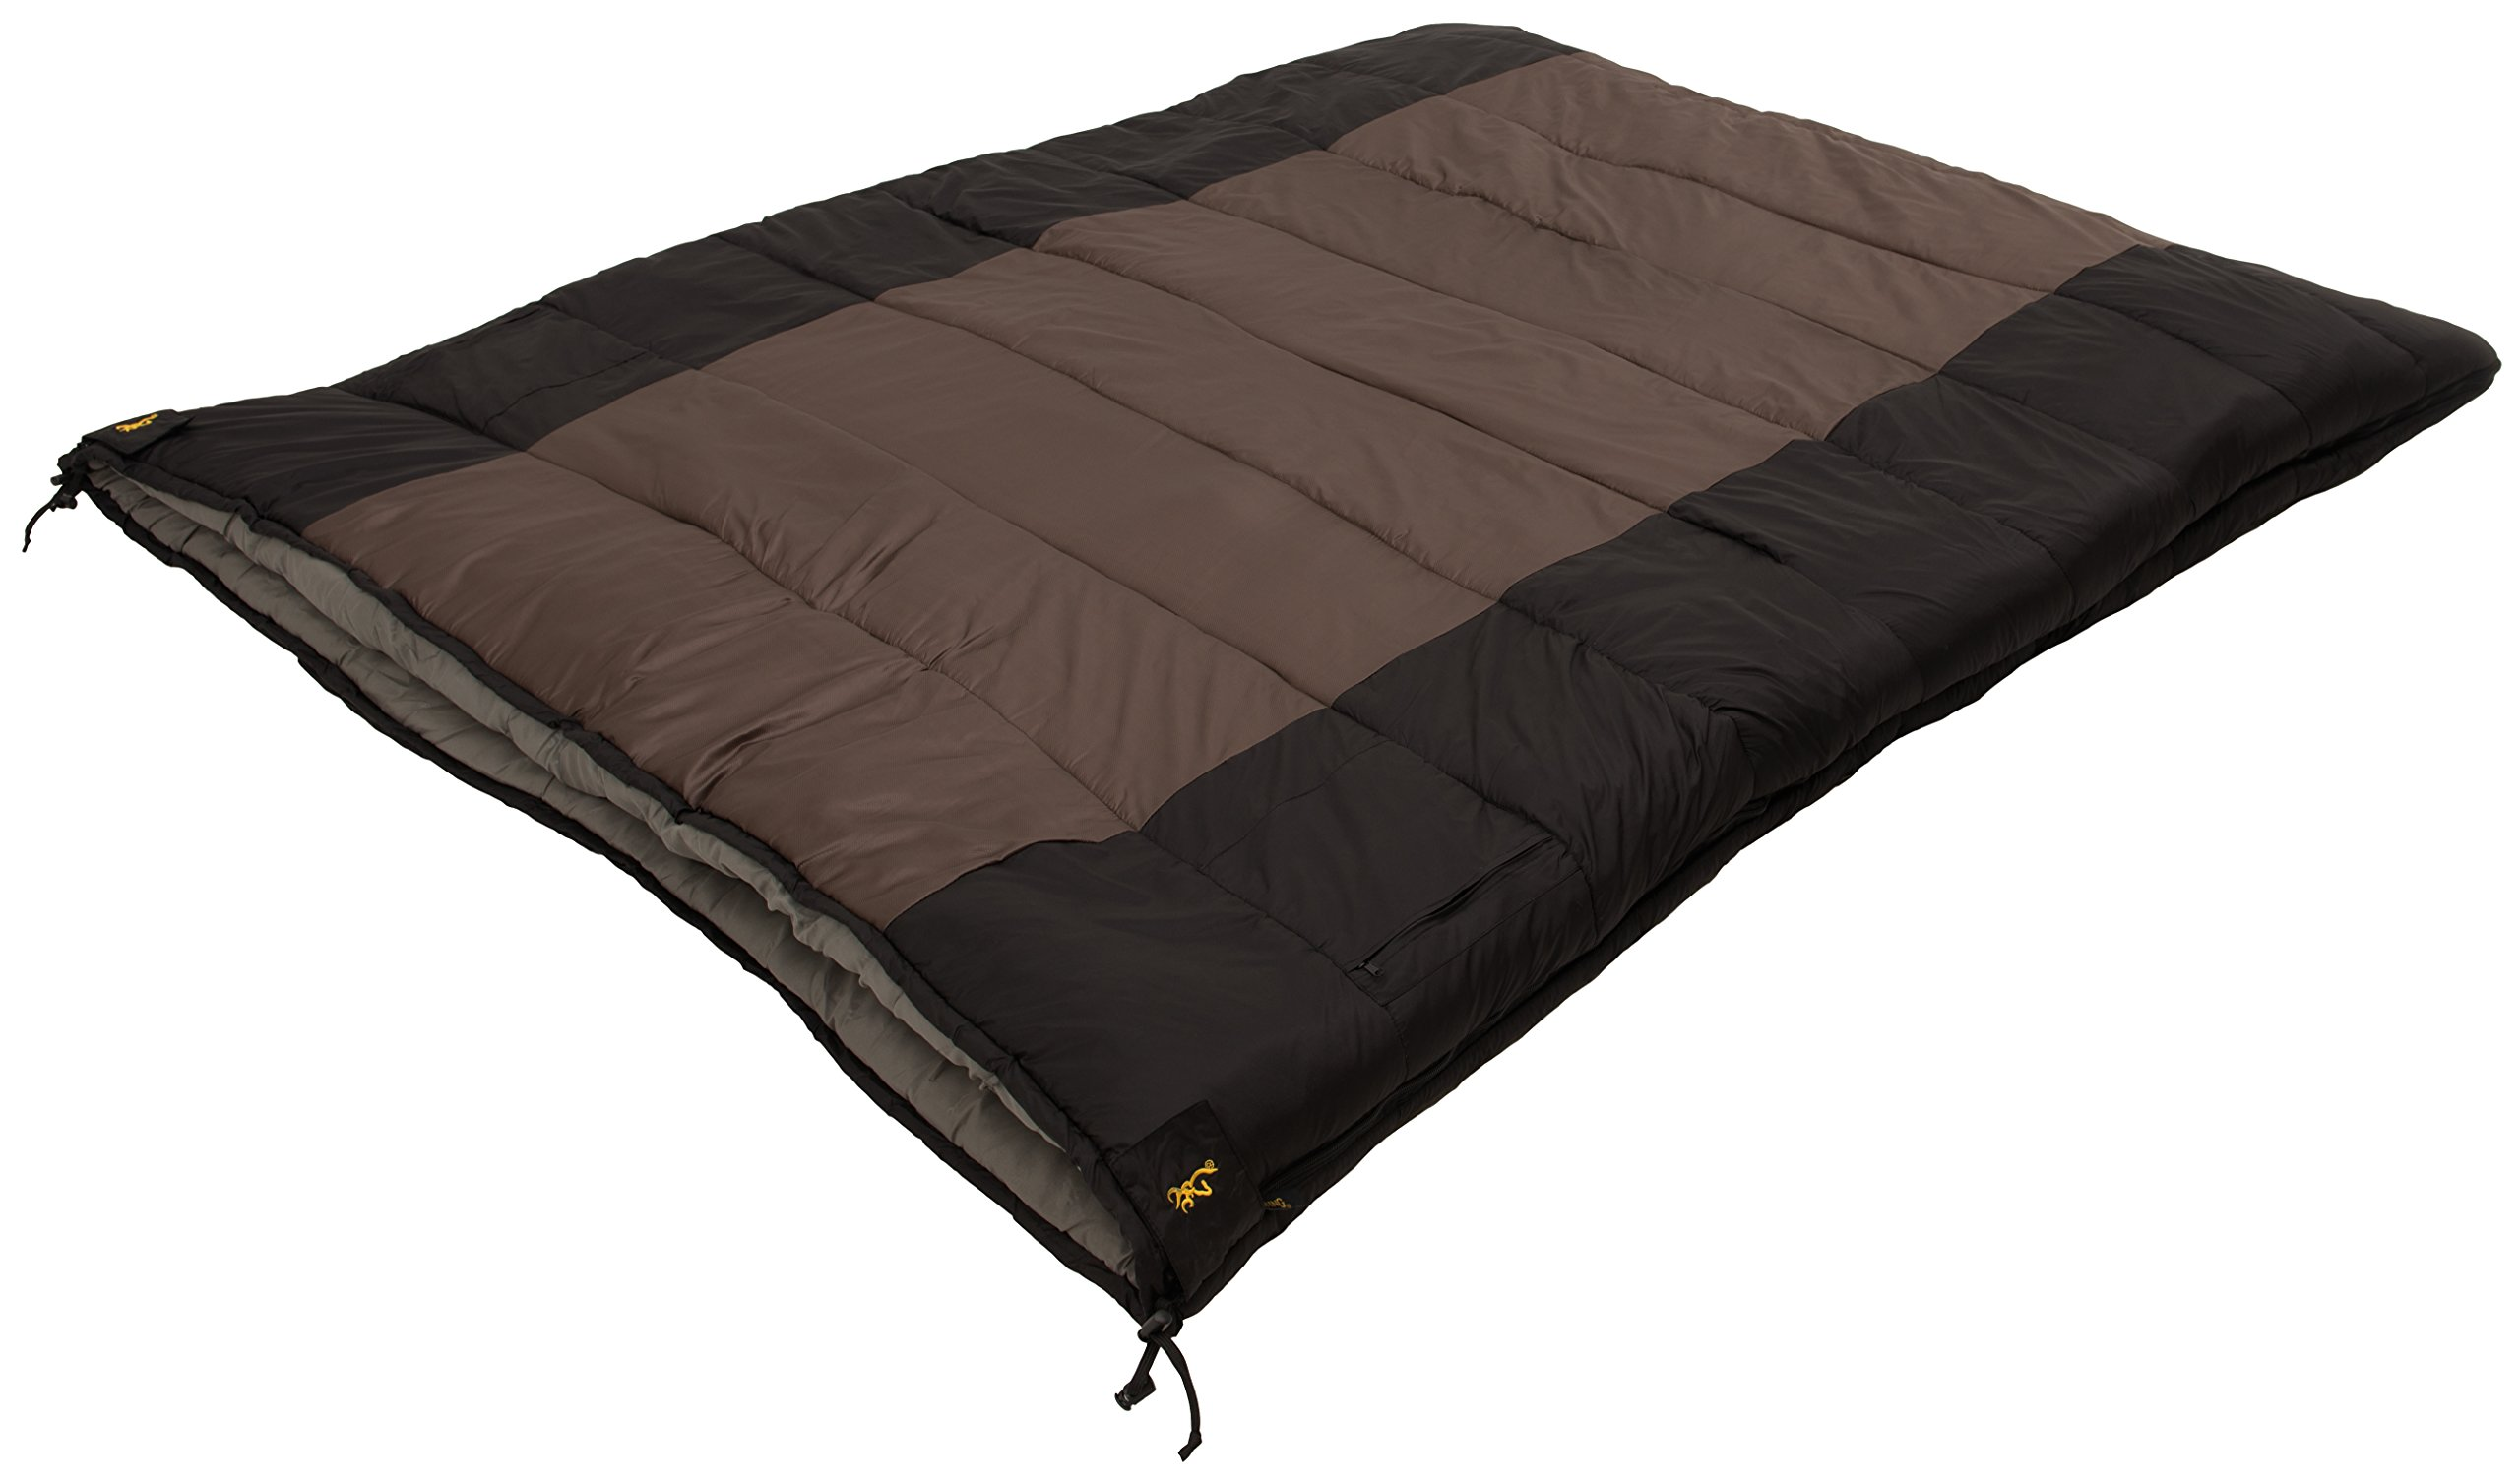 Browning Camping Side-by-Side 0 Degree Double Sleeping Bag by Browning Camping